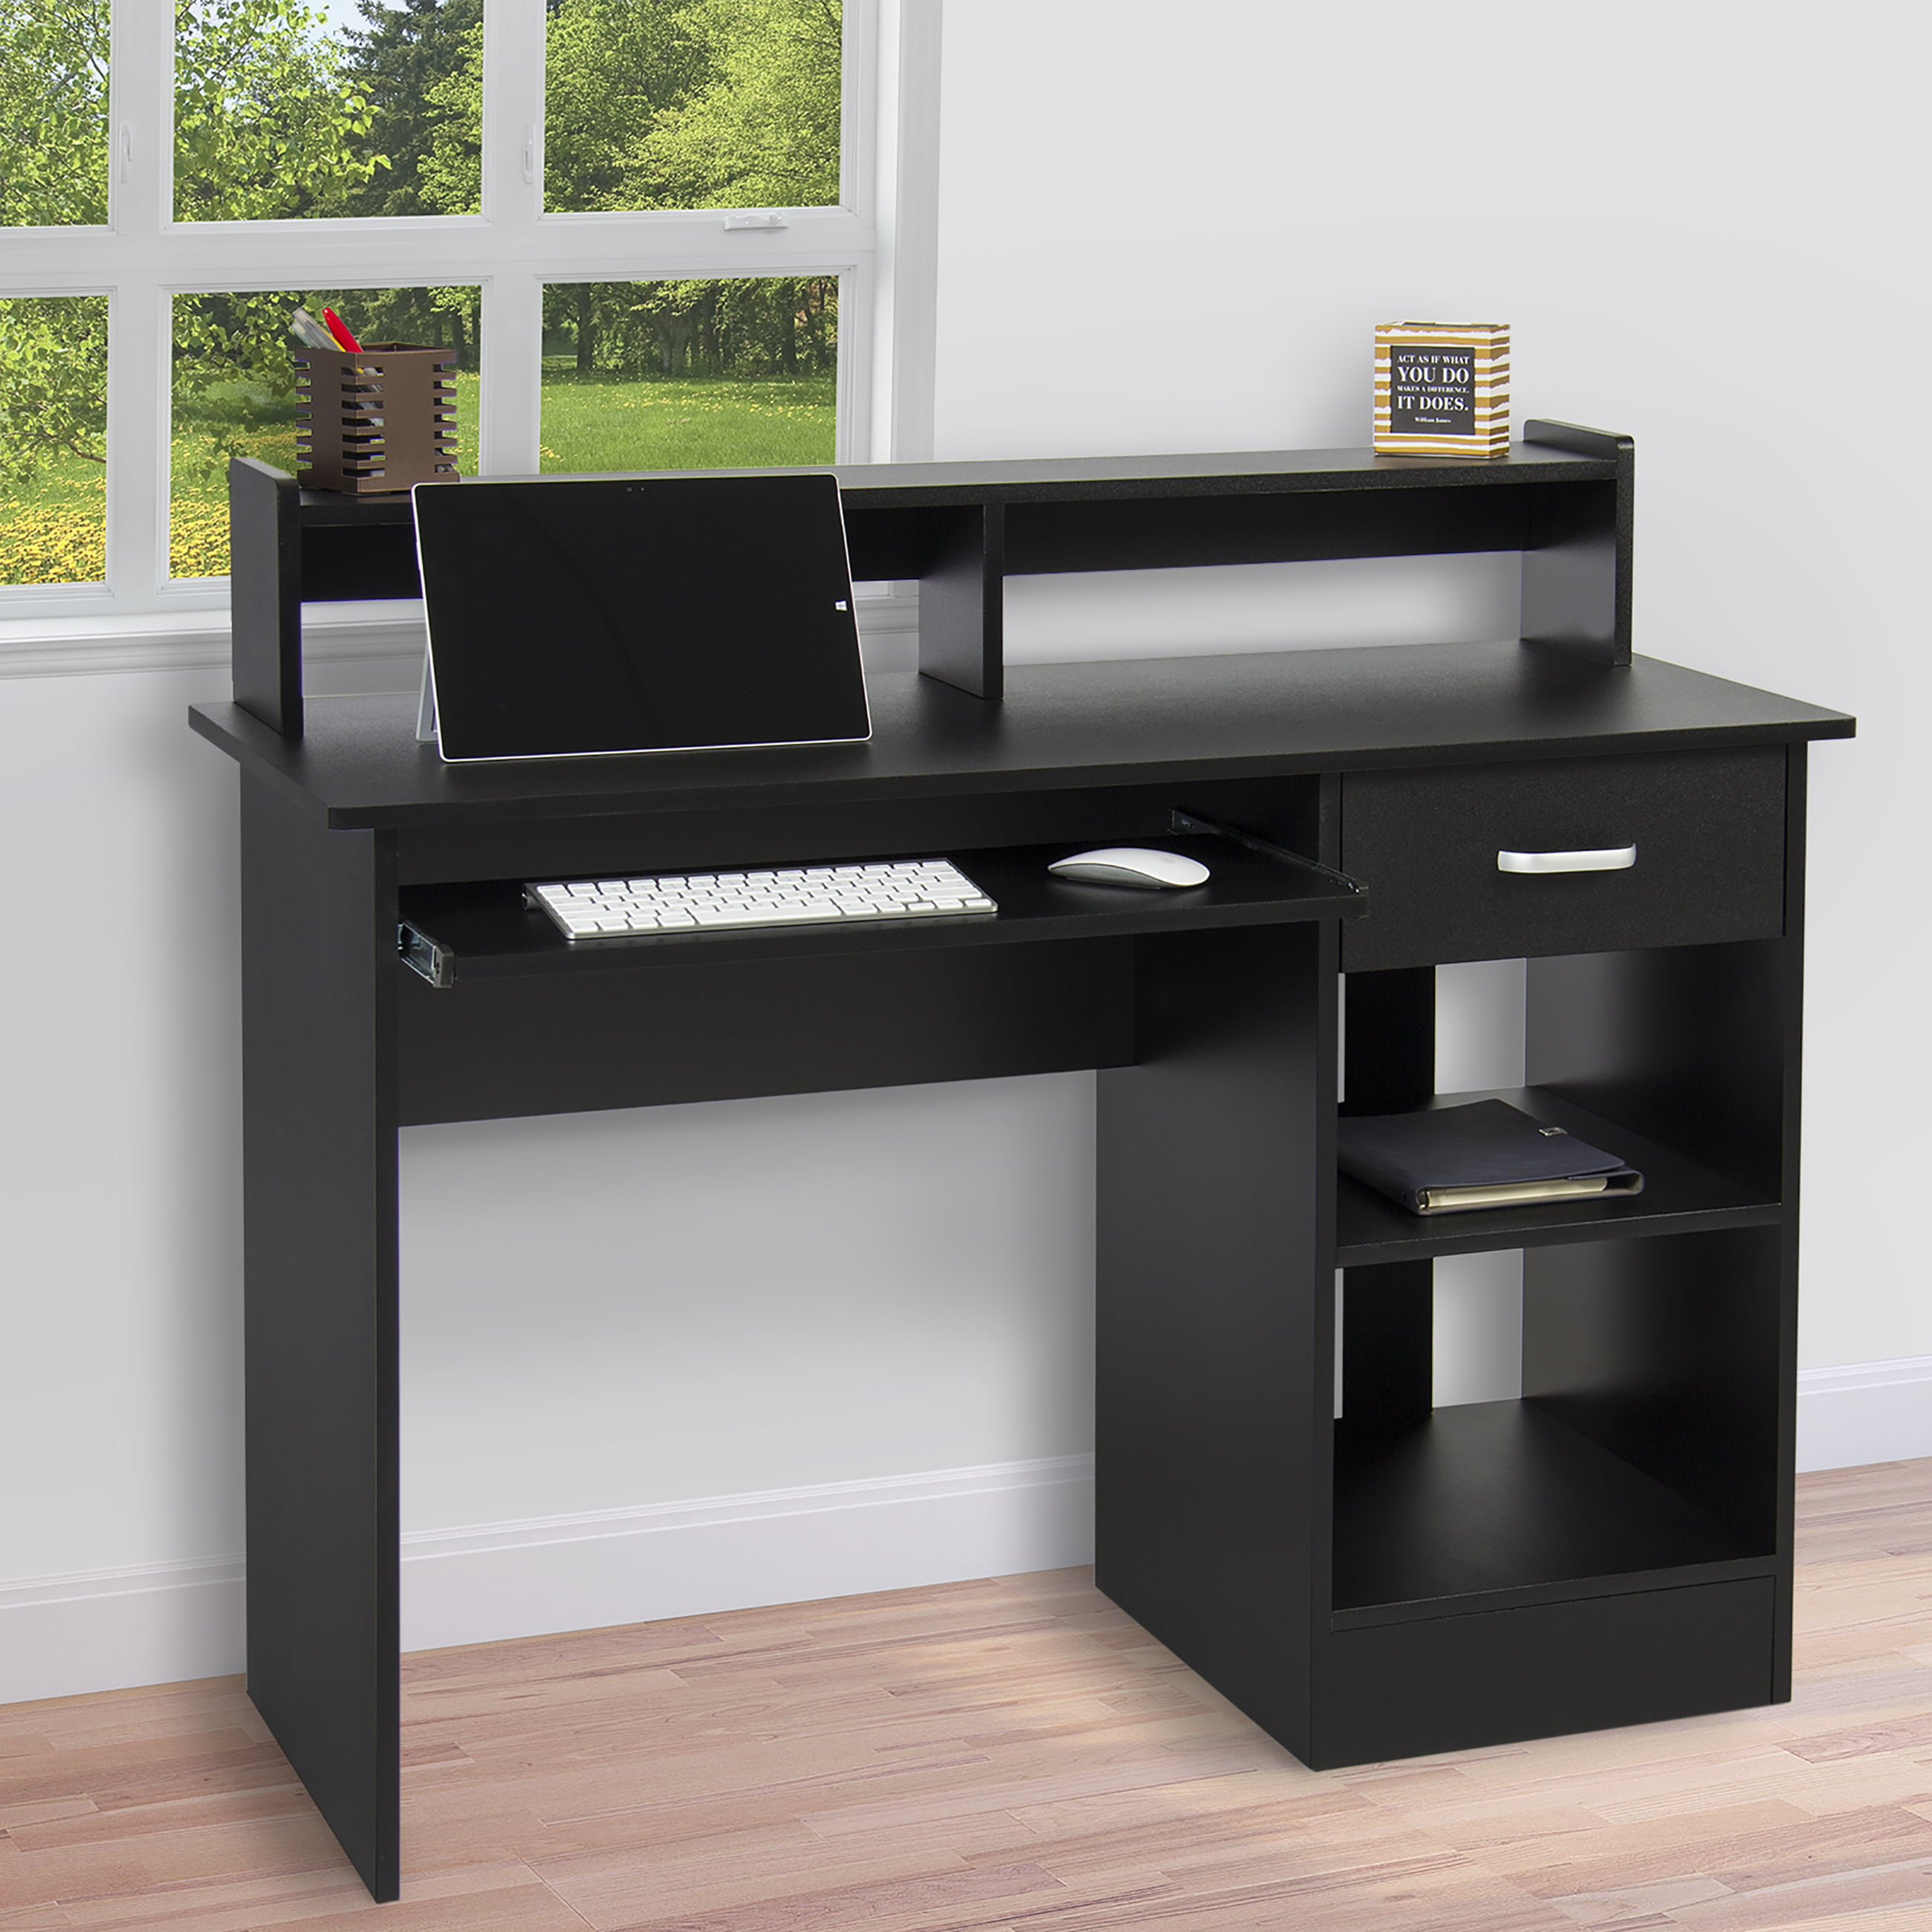 walmart home office desk. Computer Desk Home Laptop Table College Office Furniture Work Station Blk Walmartcom Walmart